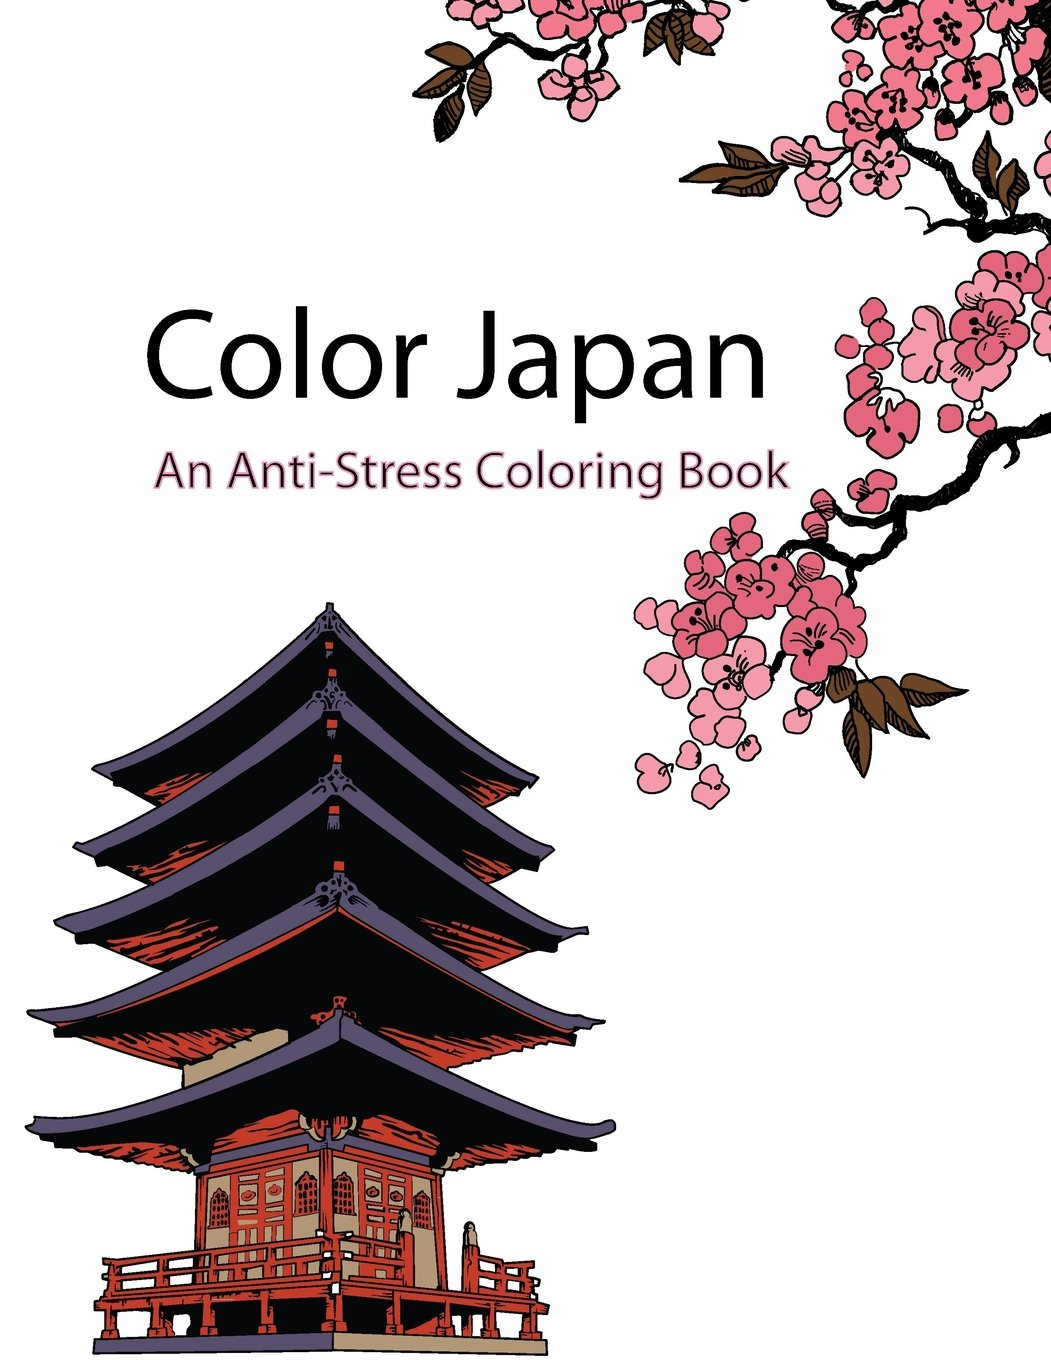 Color therapy anti stress coloring book app - Color Japan Color Therapy An Anti Stress Coloring Book Star Coloring Books De Stress Artist 9781518646577 Amazon Com Books